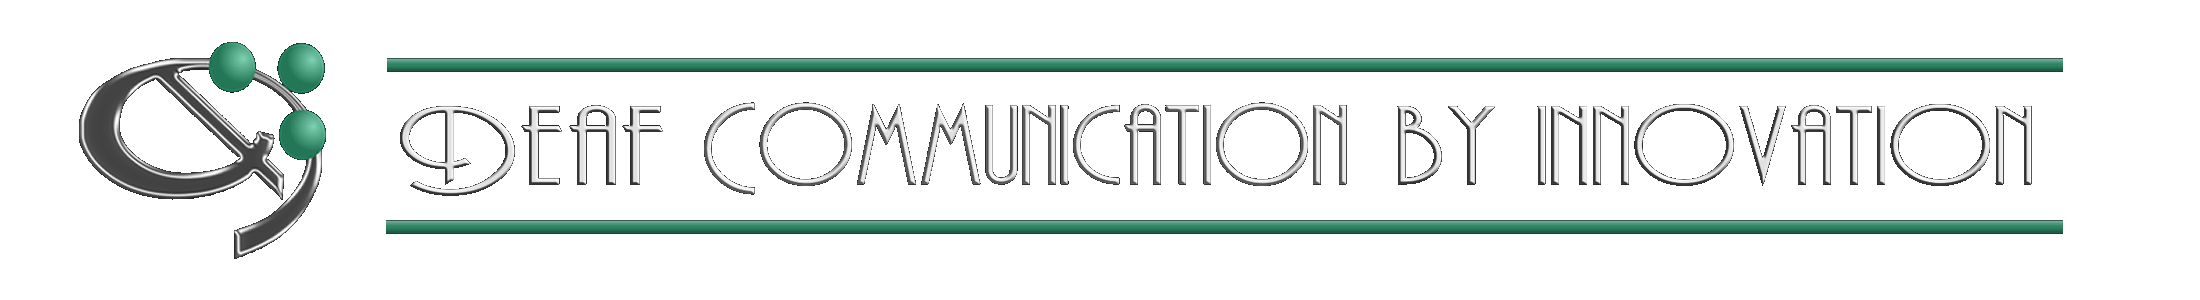 Deaf Communication by Innovation